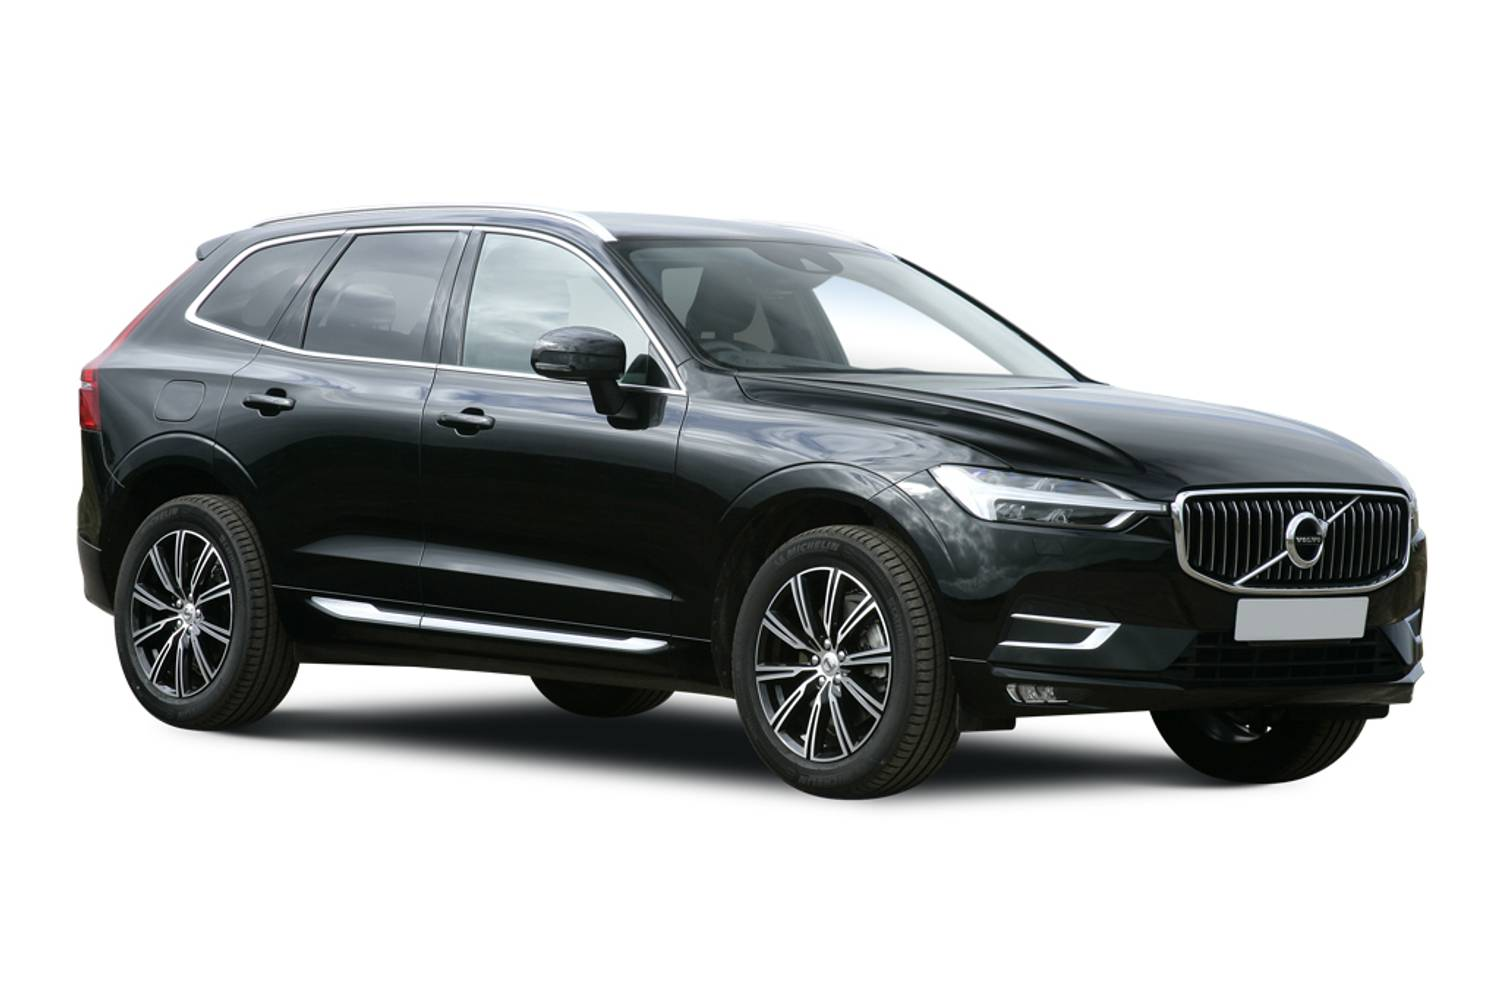 new volvo xc60 diesel estate 2 0 d4 momentum pro 5 door awd geartronic 2017 for sale. Black Bedroom Furniture Sets. Home Design Ideas